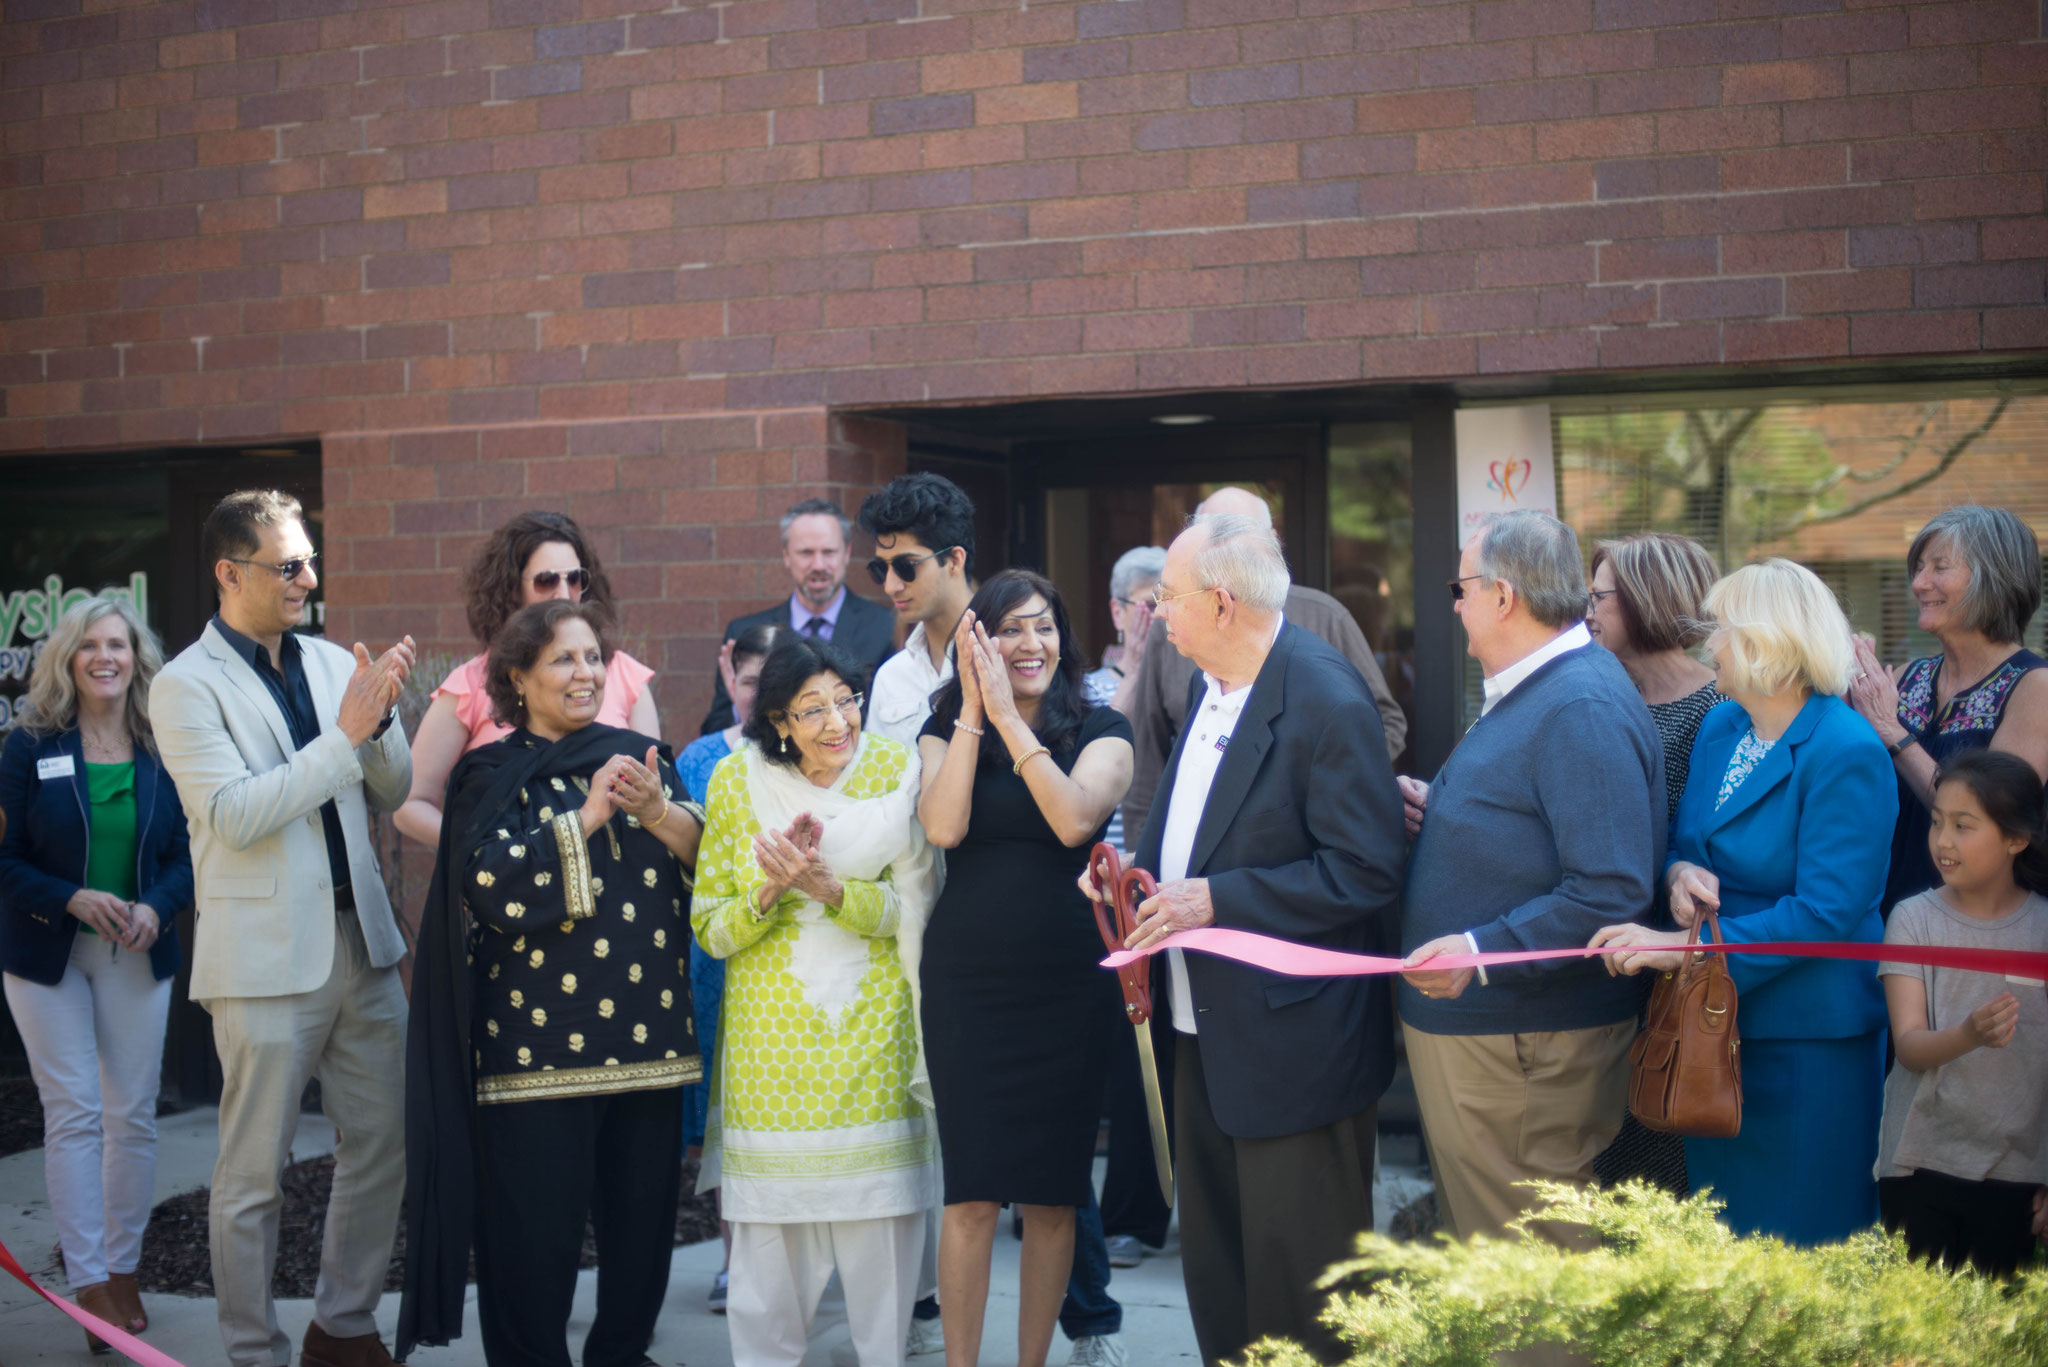 Ribbon cutting with Schaumburg Mayor Larson, friends and family